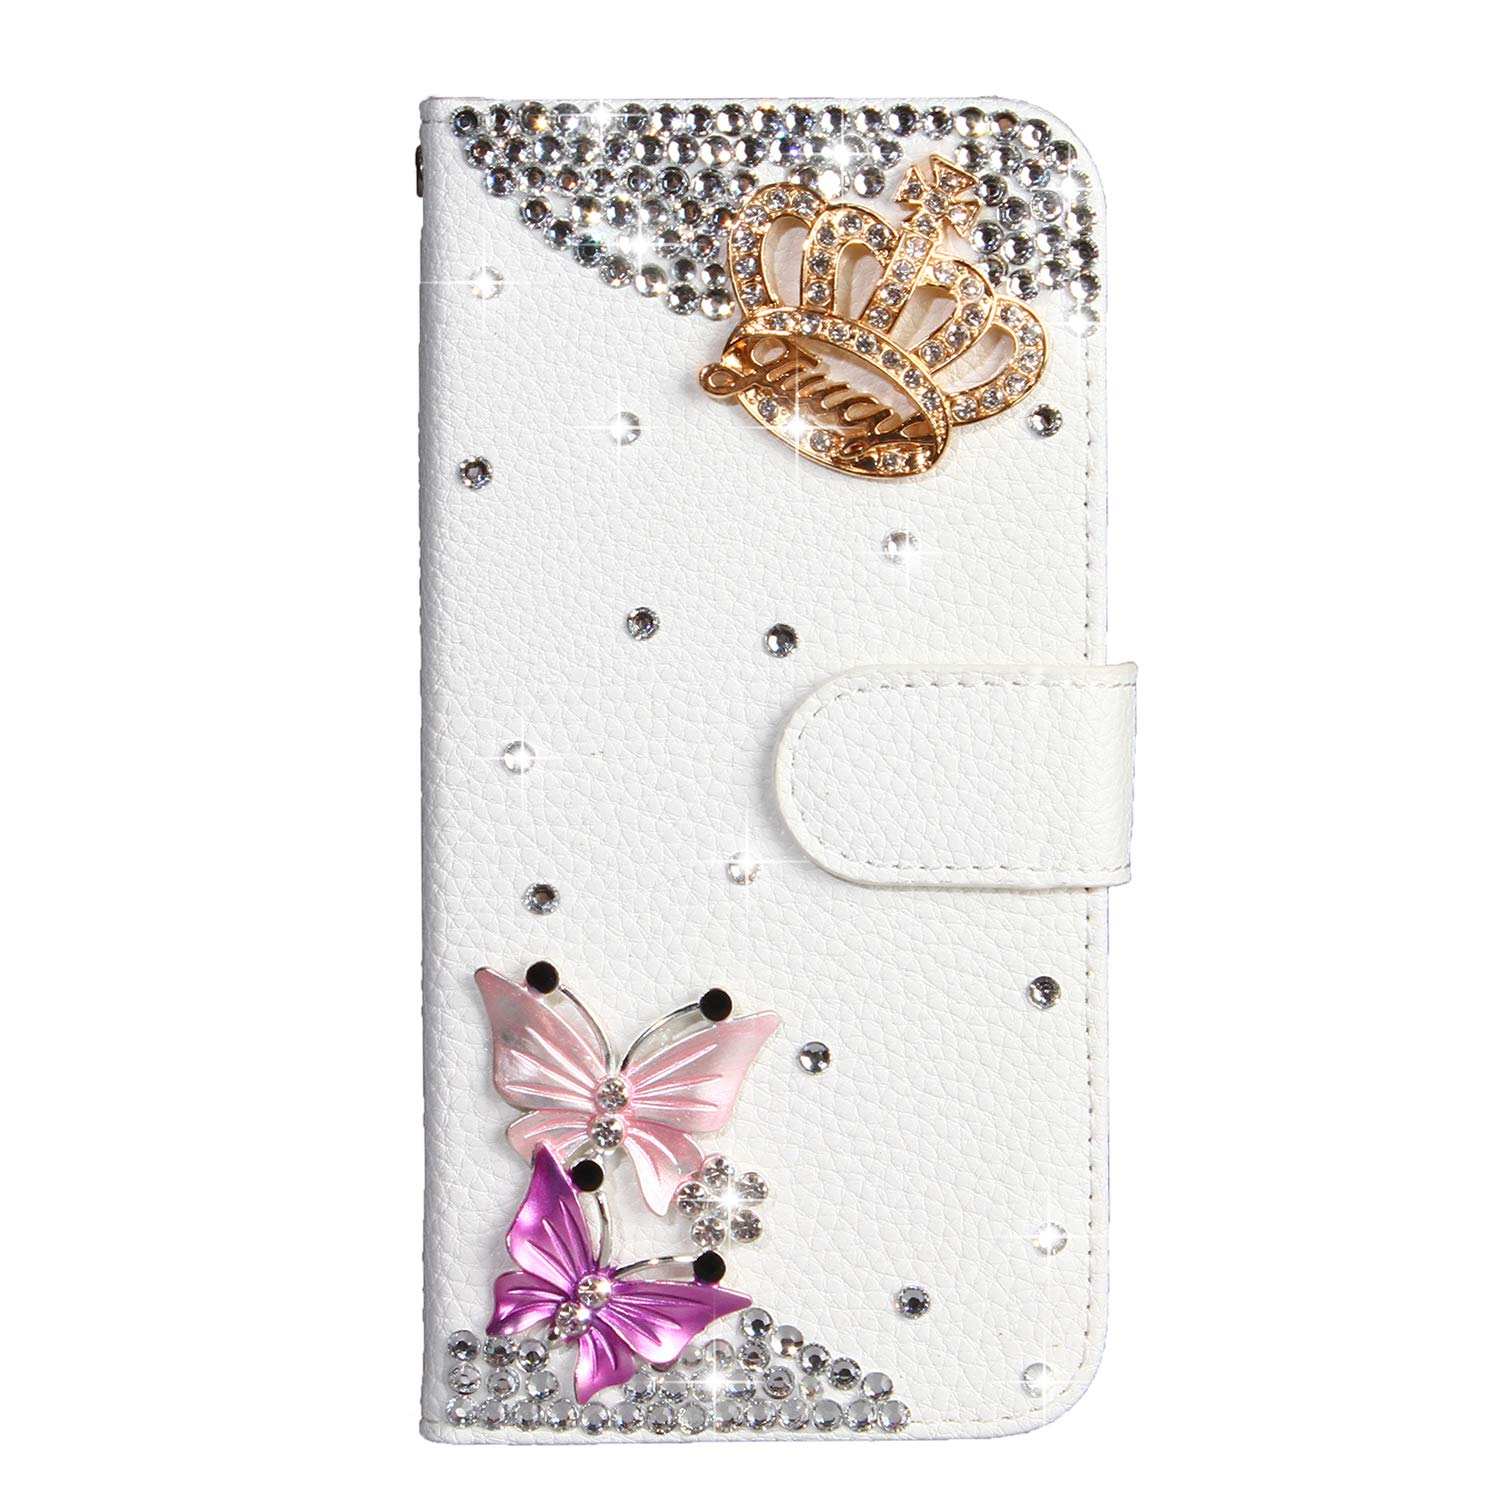 Crystal Wallet Case for Samsung Galaxy A8 2018,Aoucase Stylish Luxury 3D Handmade Crown Butterfly Design Bling Pocket Purse Soft Rubber Stand White Leather Case with Black Dual-use Stylus by Aoucase